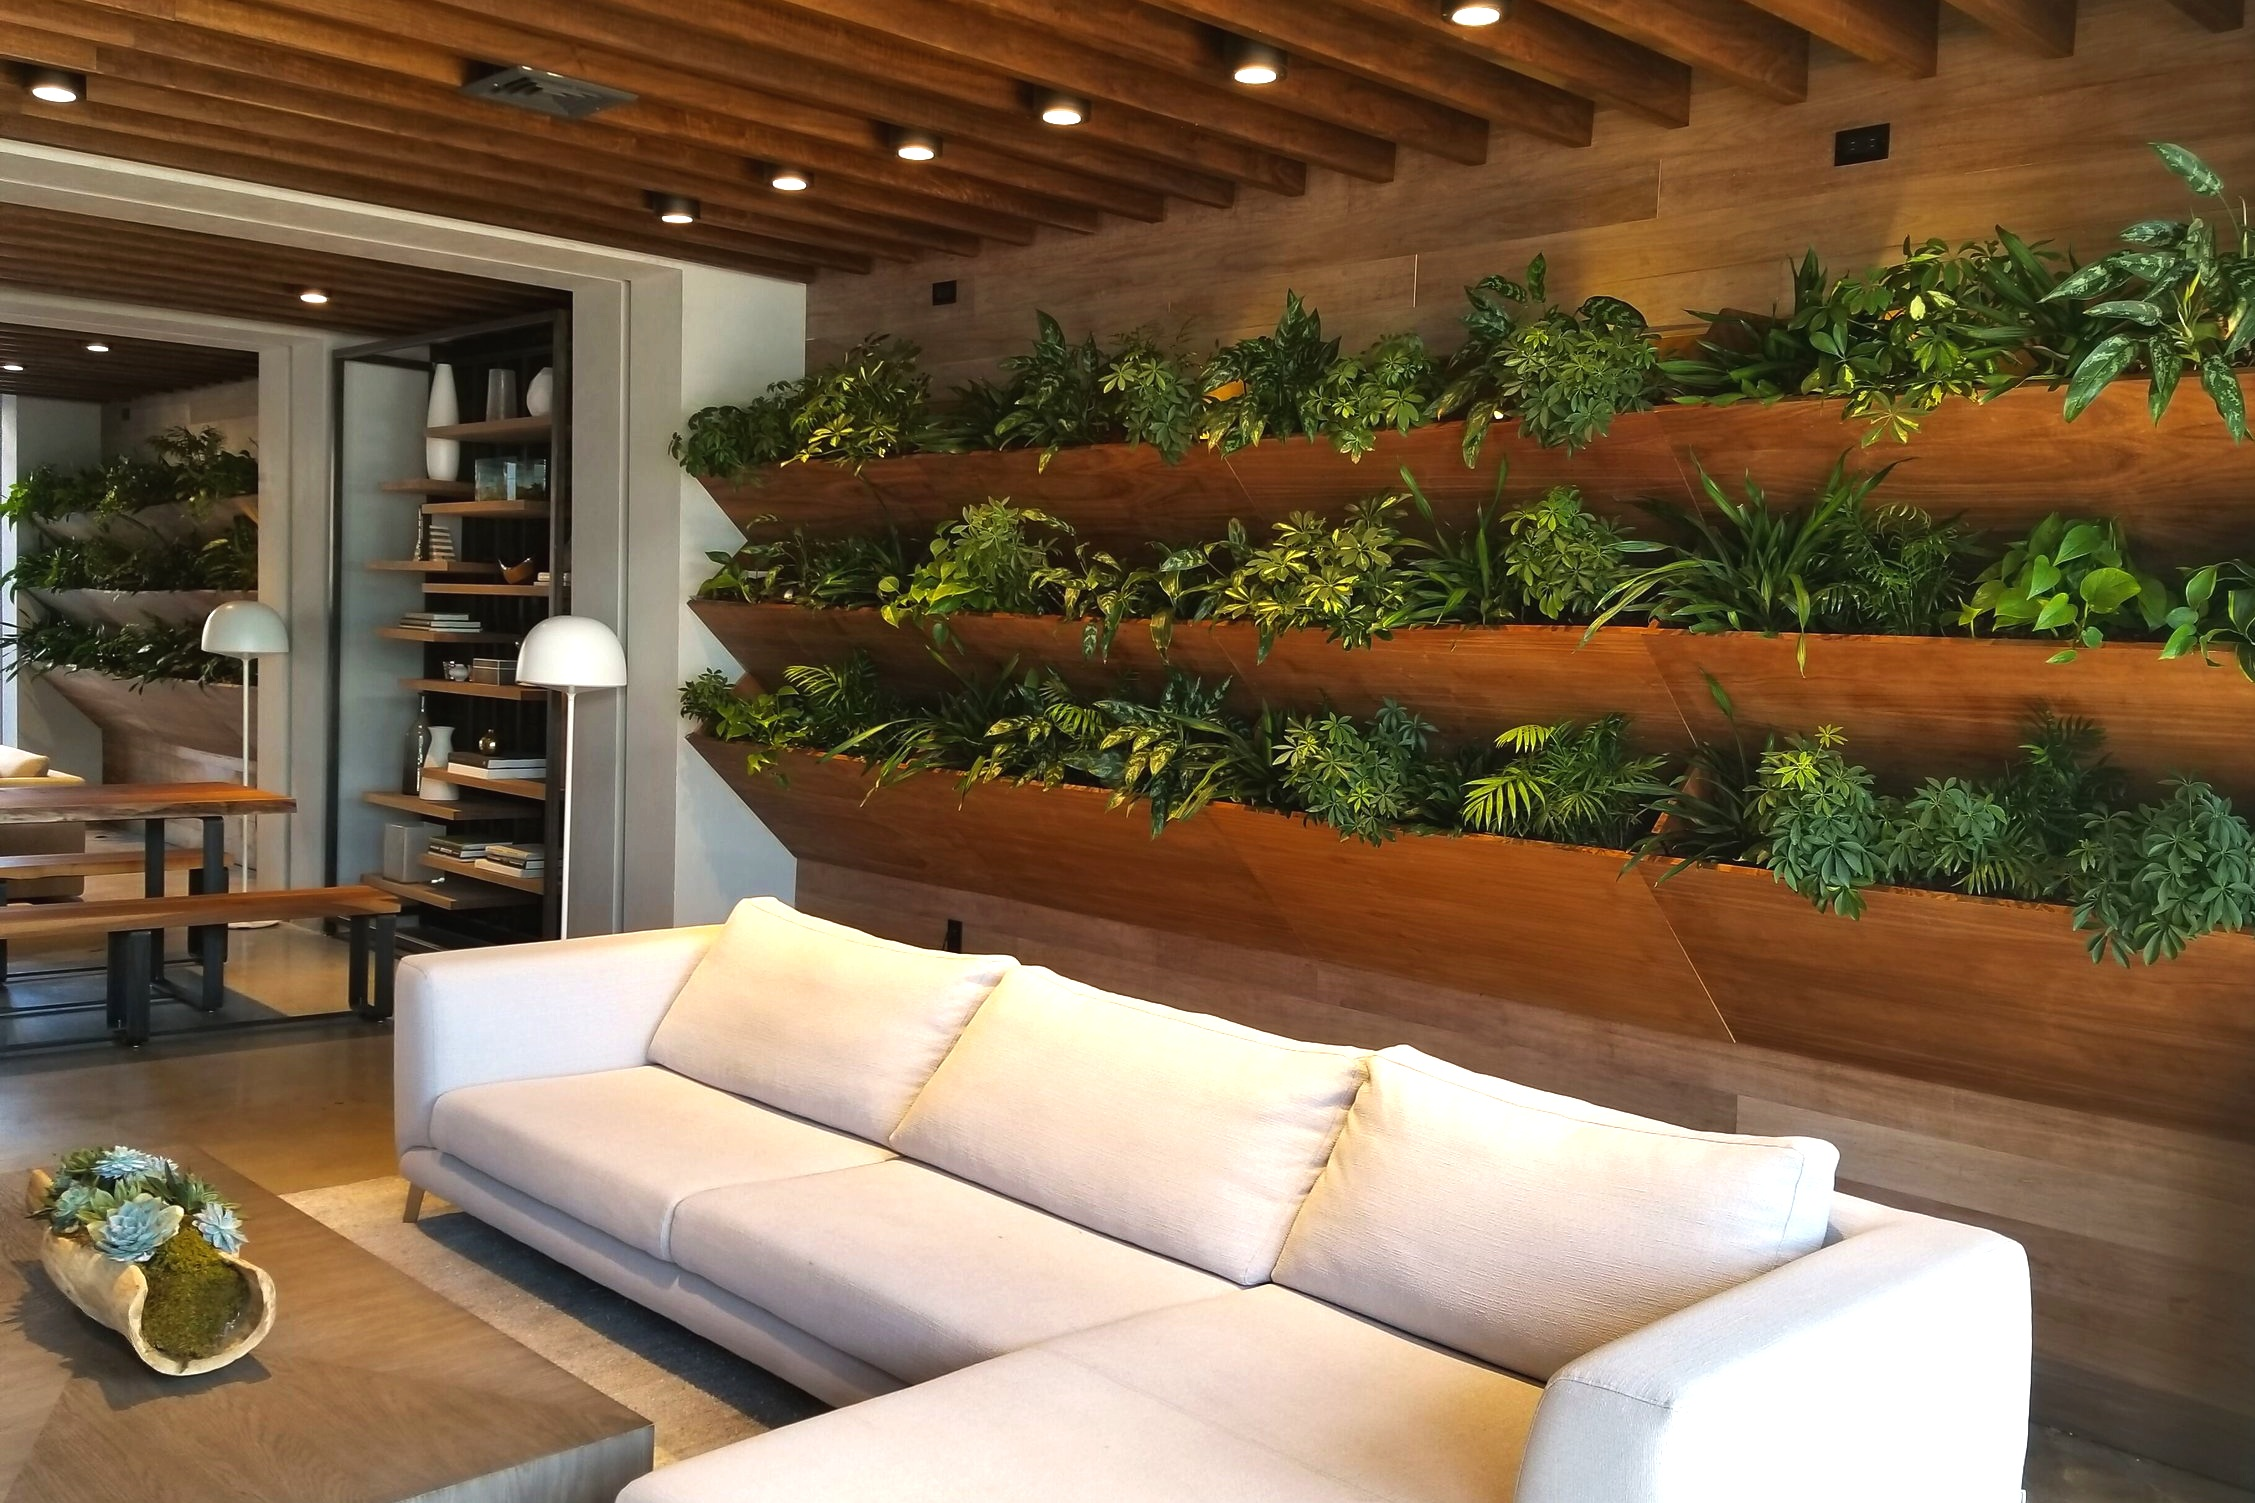 Interiors - We design and install interior green walls and unique plantscapes for residential and commercial spaces.